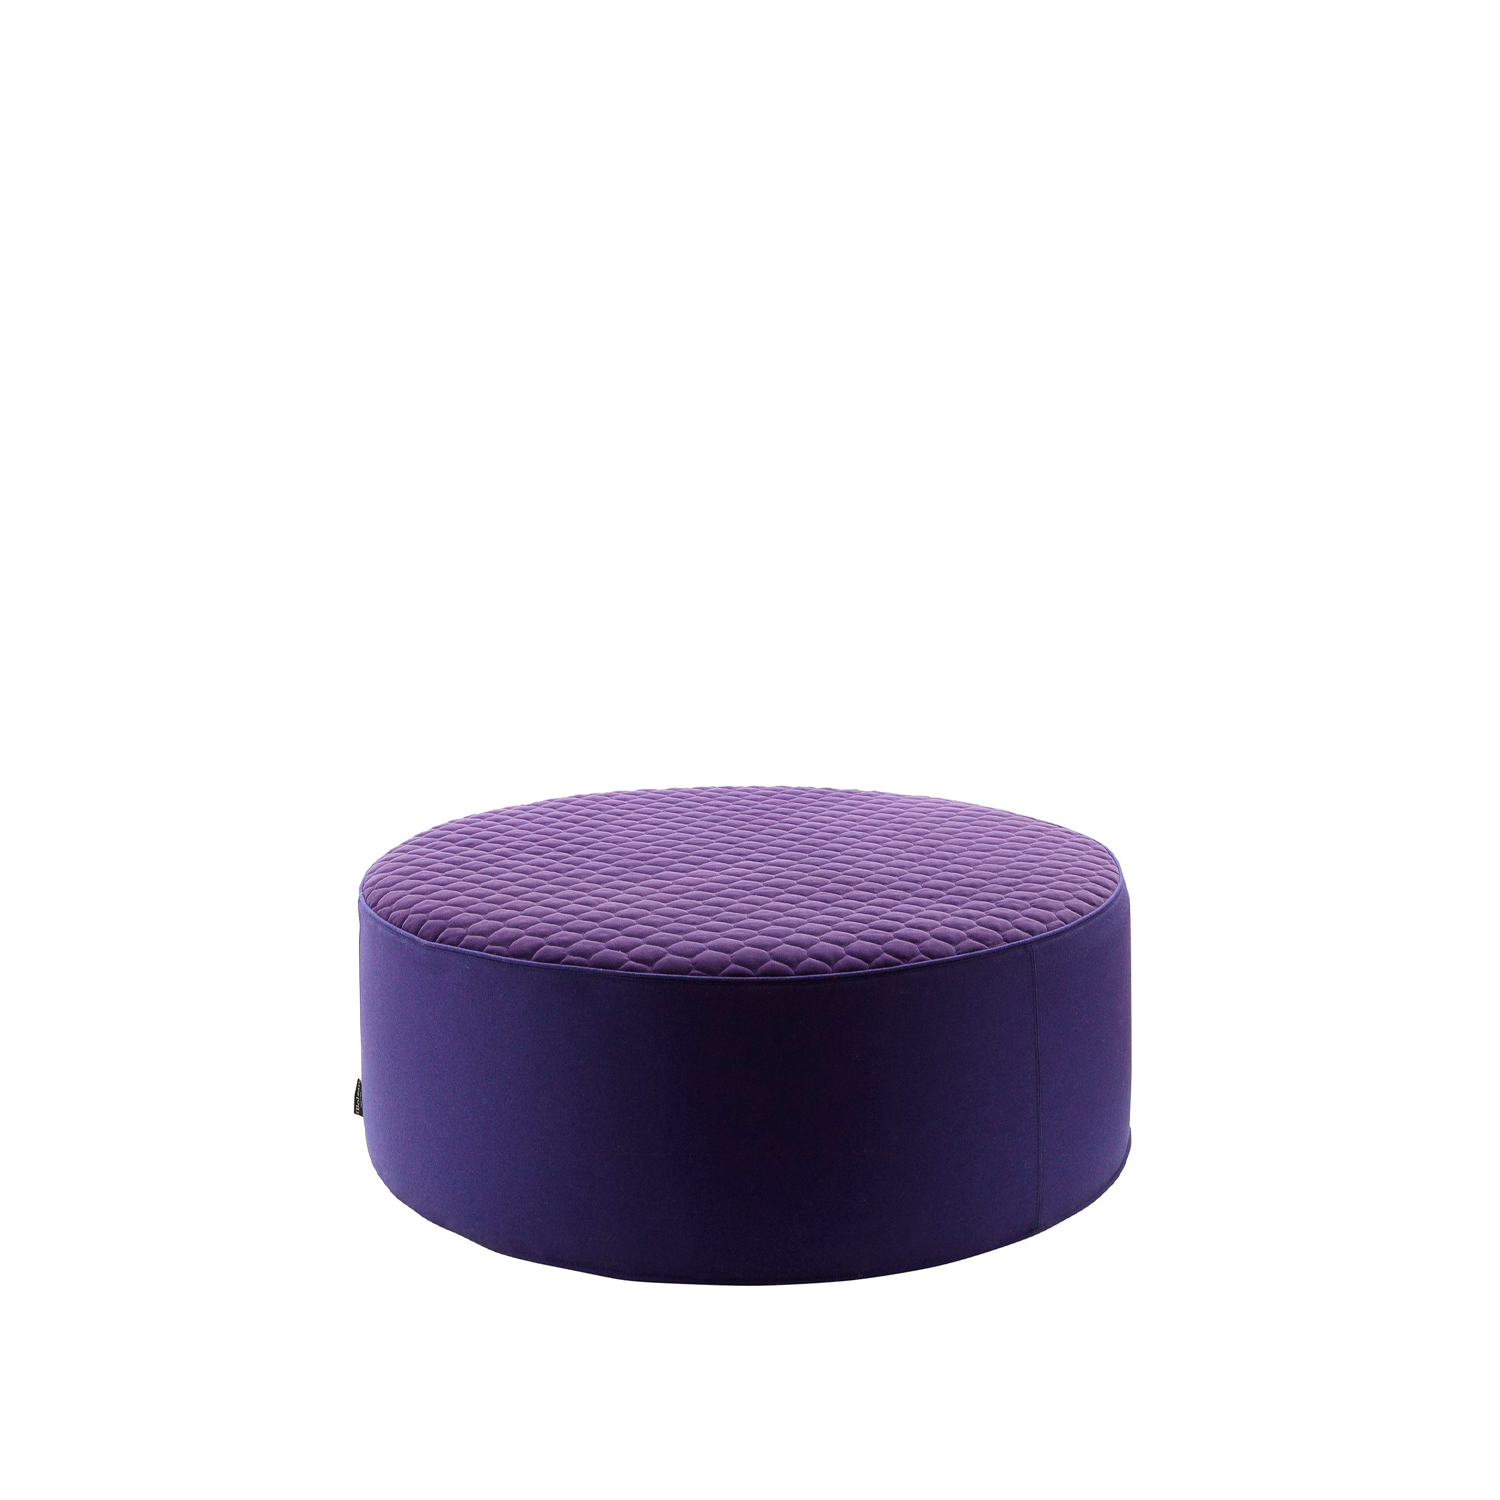 Corolle Circus Pouf  - Corolle is a circular or square padded pouf that fits easily to any room in the house.     Matter of Stuff